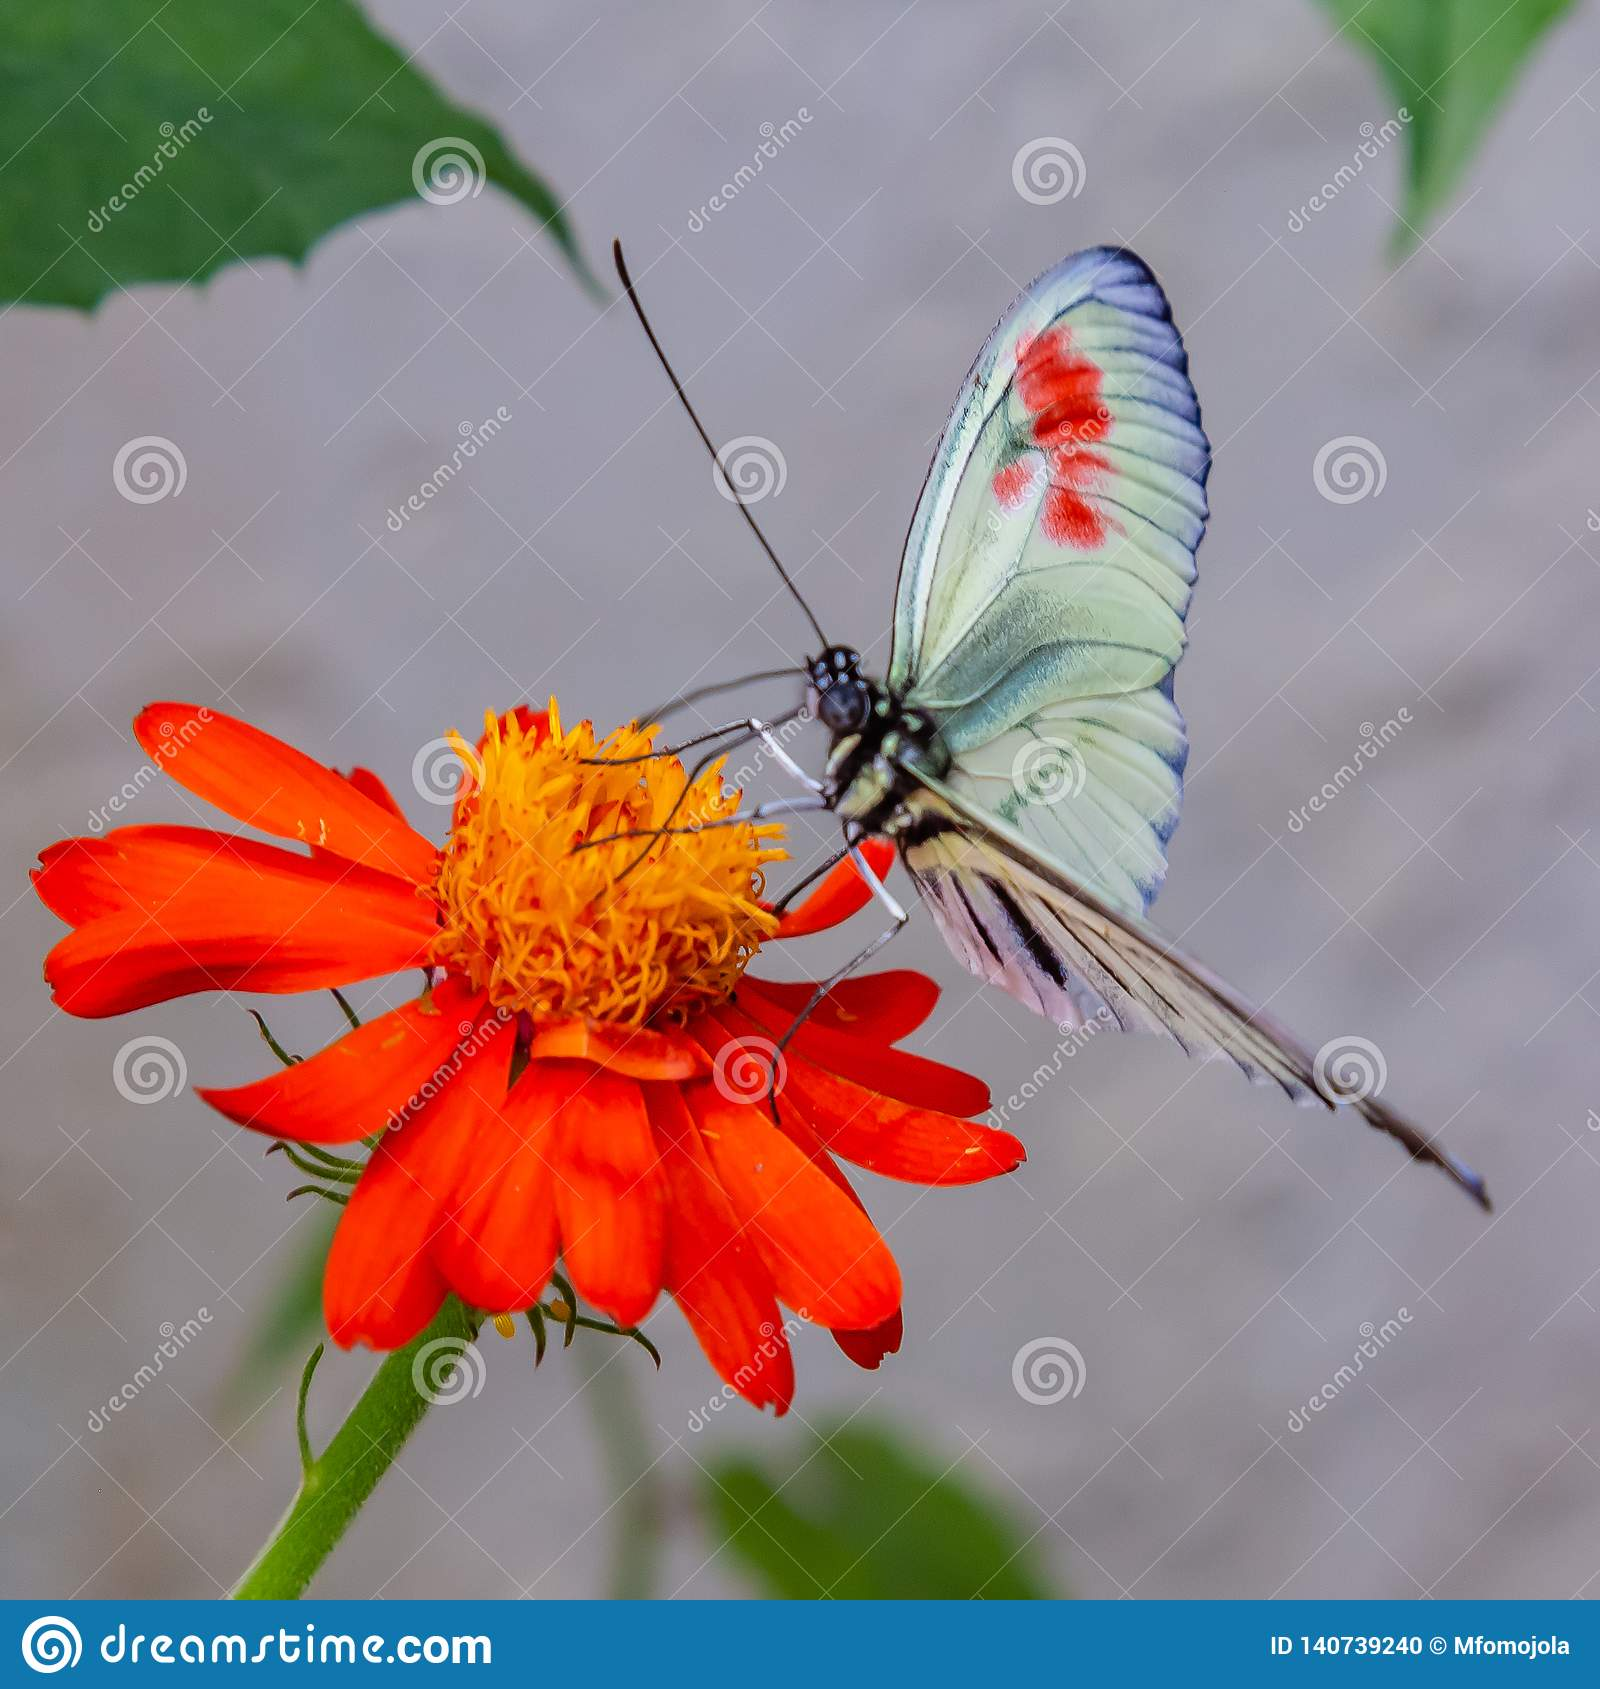 Heliconius longwing butterfly on yellow flower with red petals